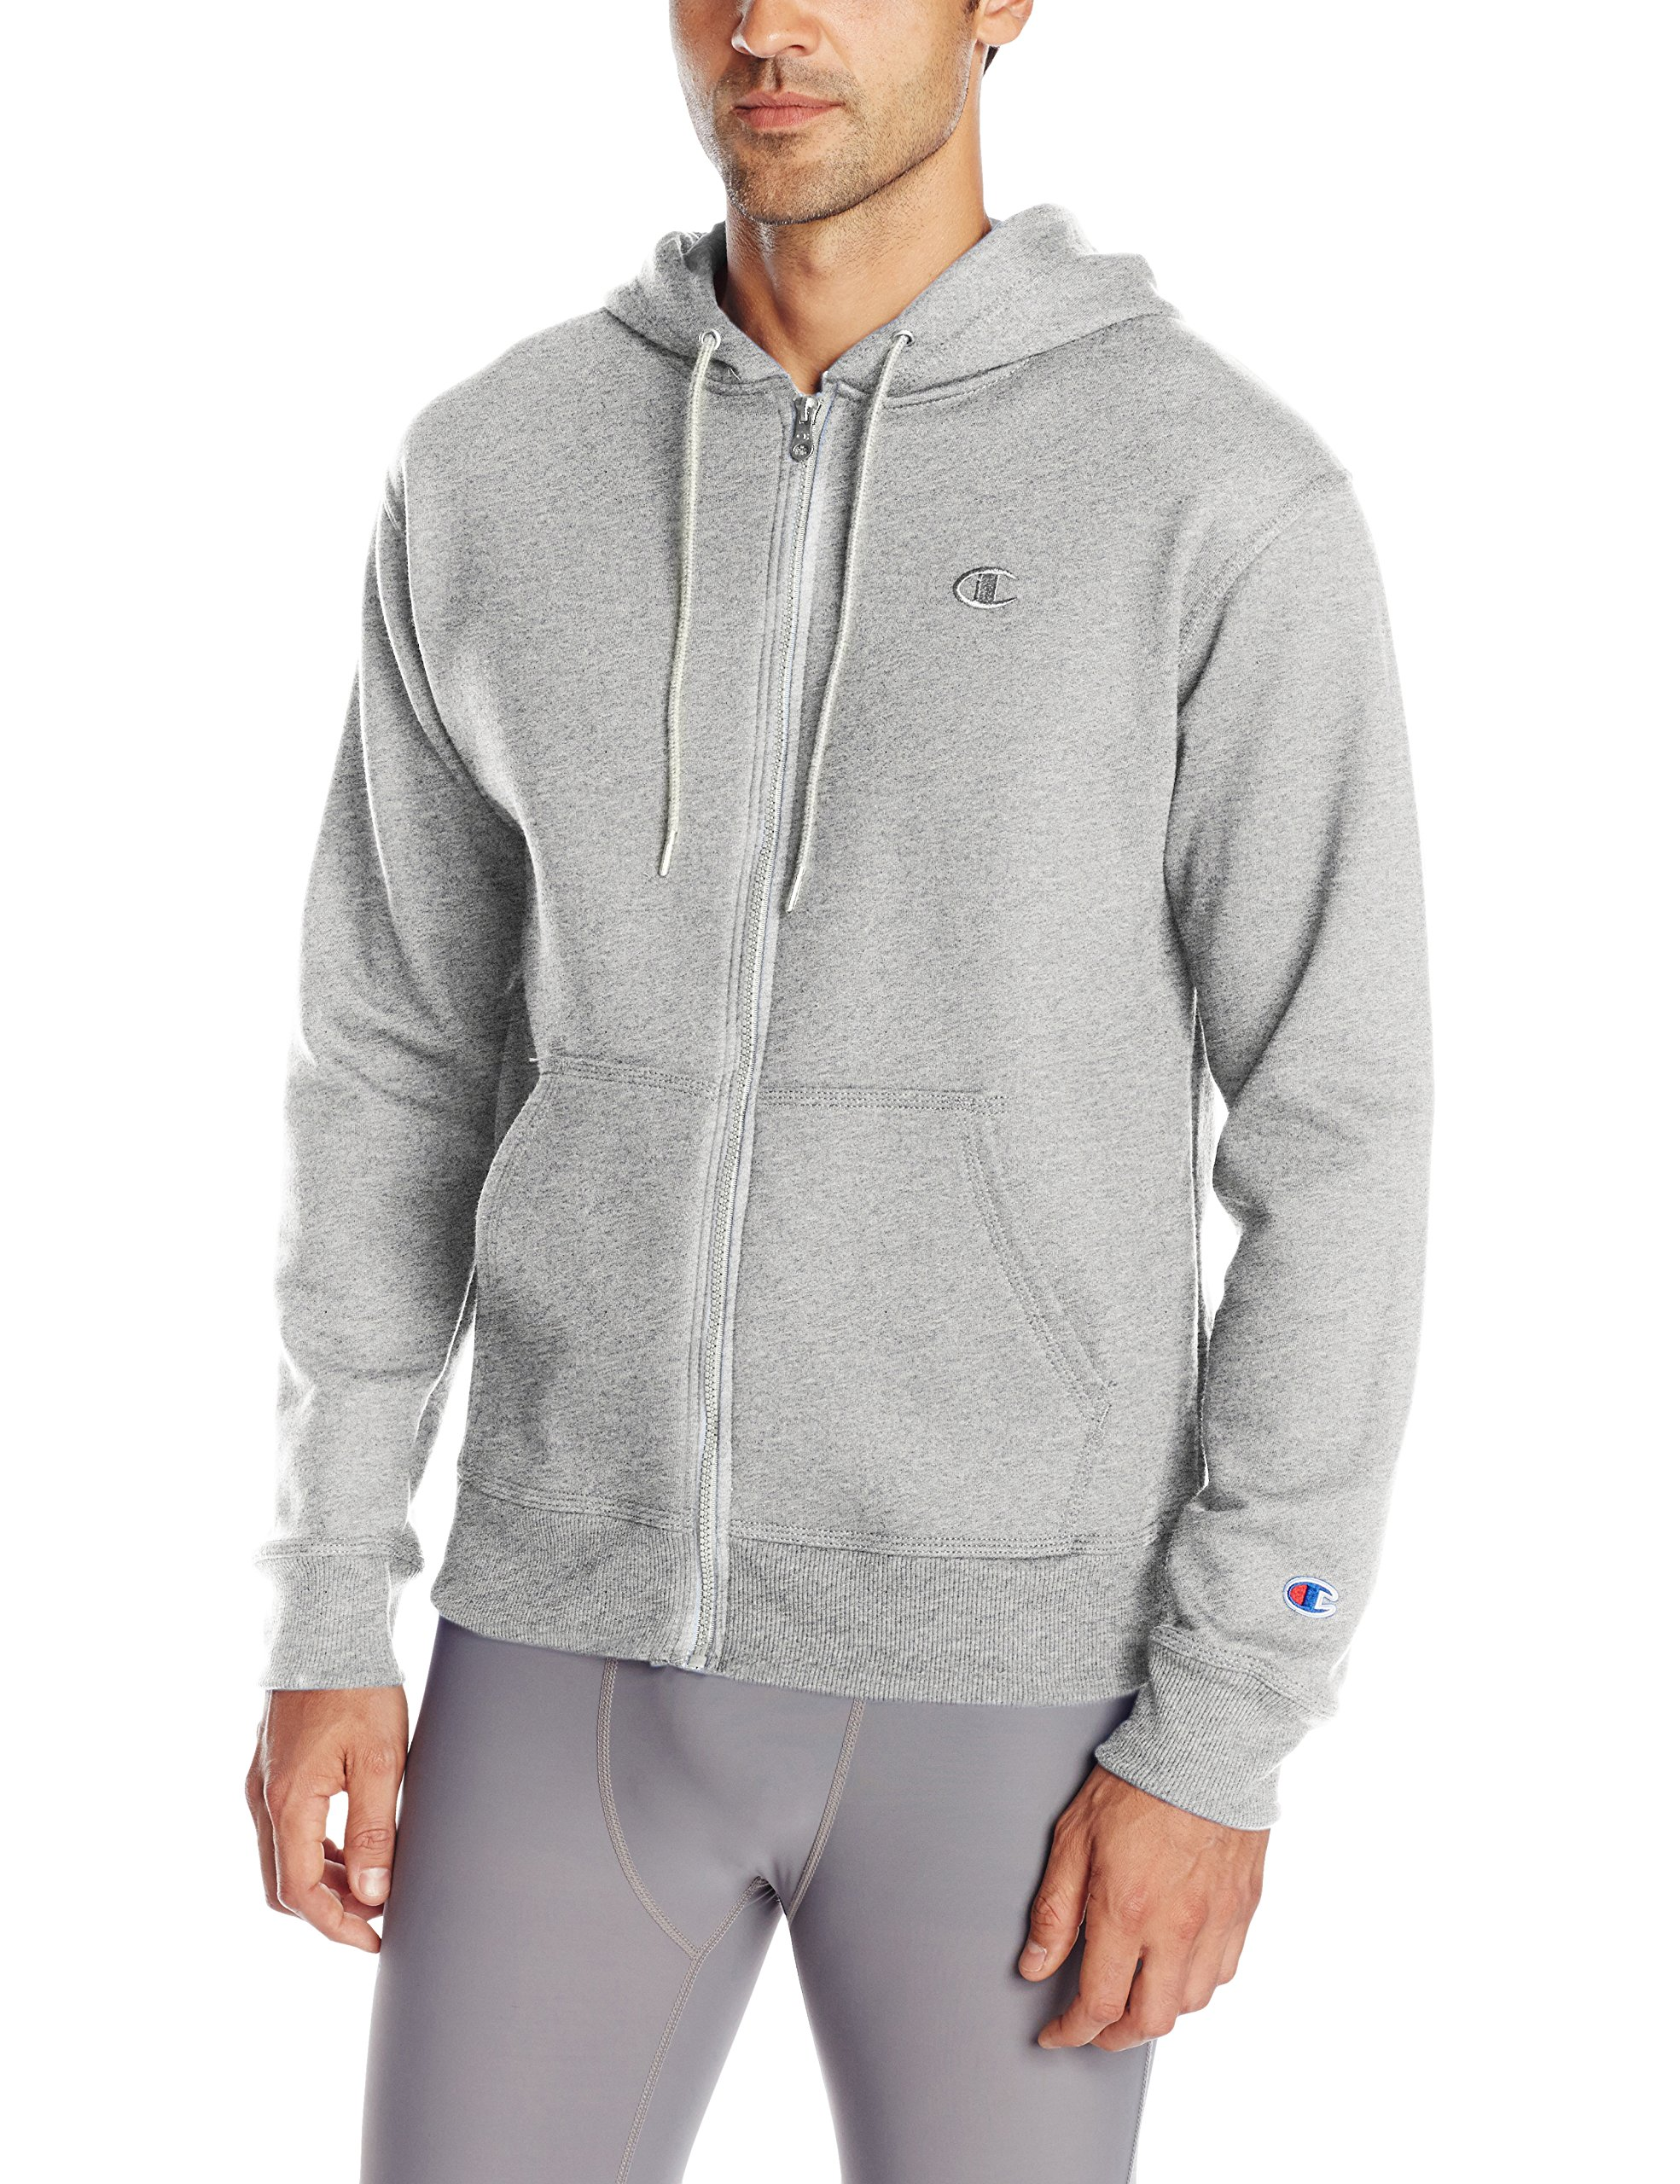 Champion Men's Powerblend Fleece Full-Zip Hoodie, Oxford Gray, 3XL by Champion